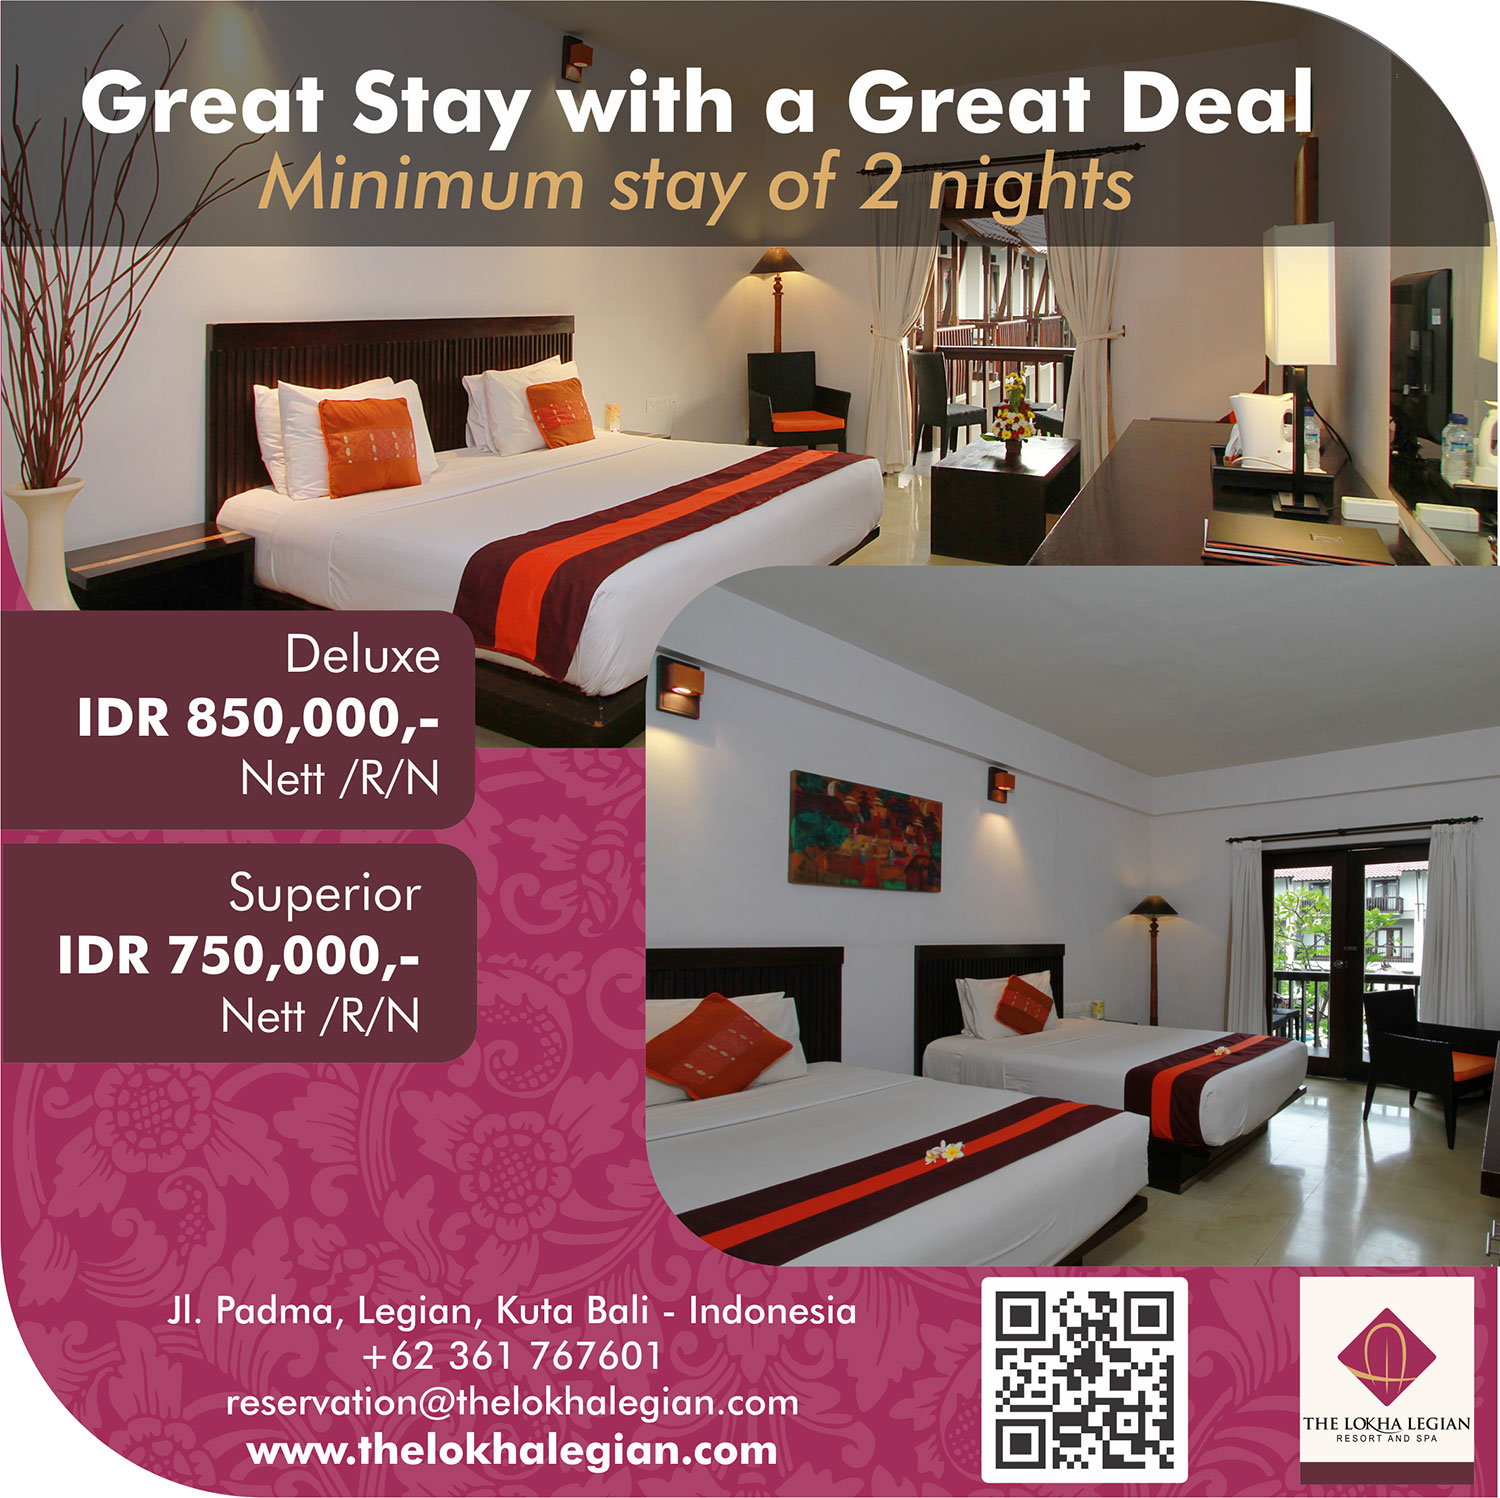 Great Stay with a Great Deal